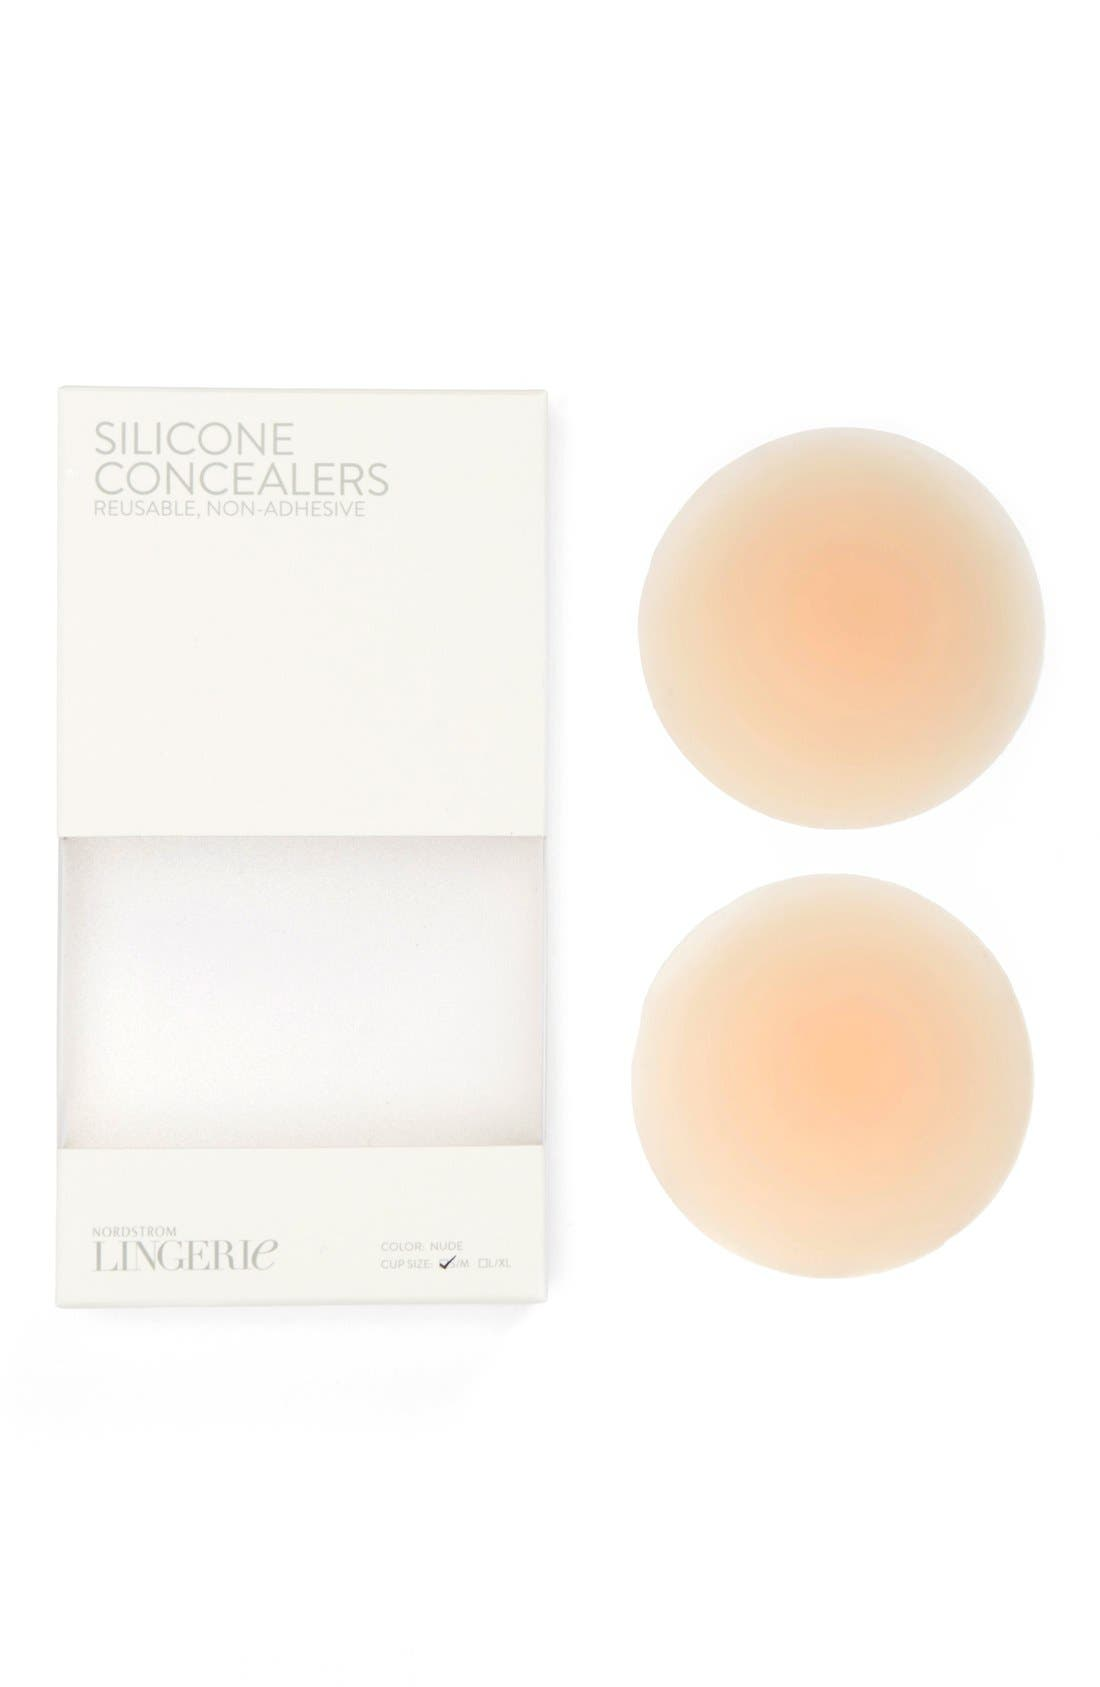 Main Image - Nordstrom Lingerie Non-Adhesive Silicone Breast Petals